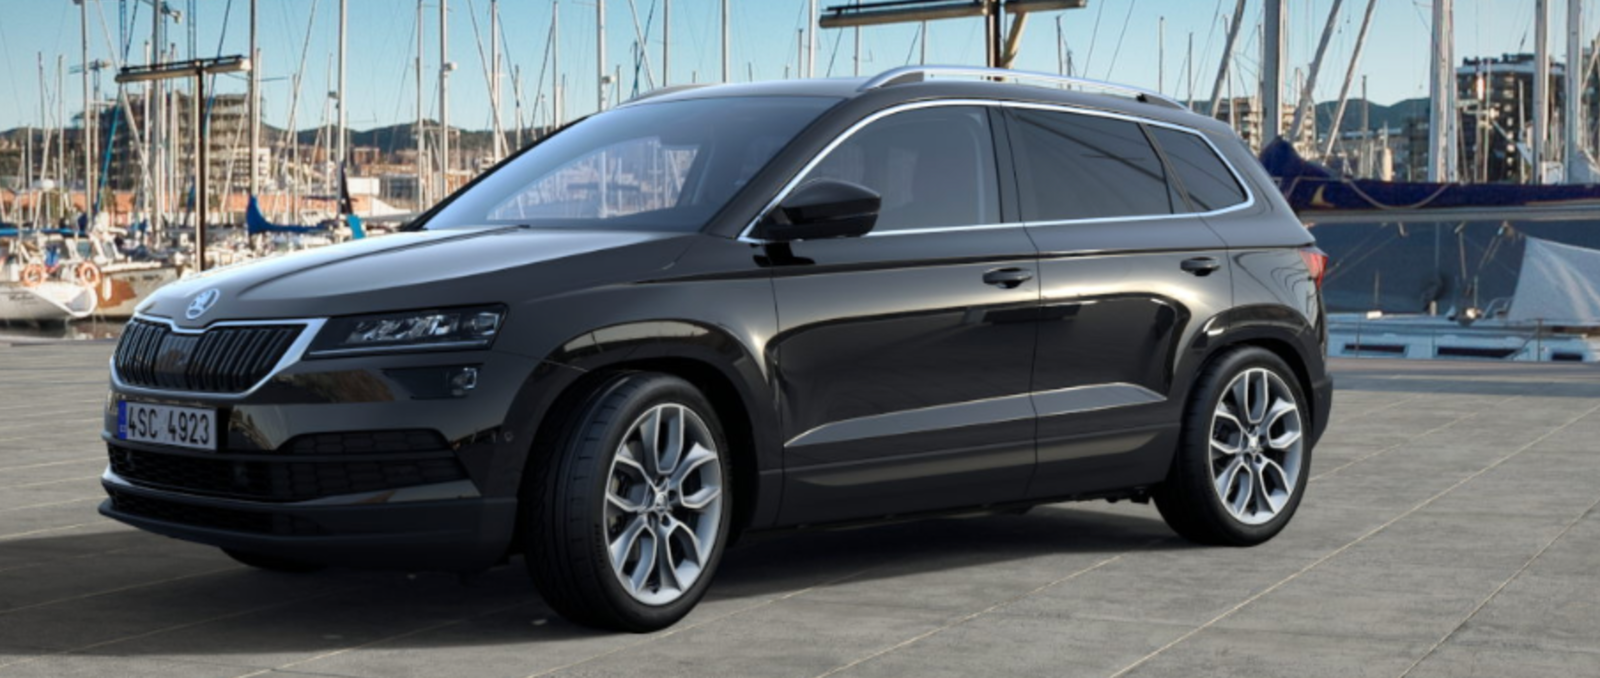 looked at the karoq today an edition model skoda karoq briskoda. Black Bedroom Furniture Sets. Home Design Ideas